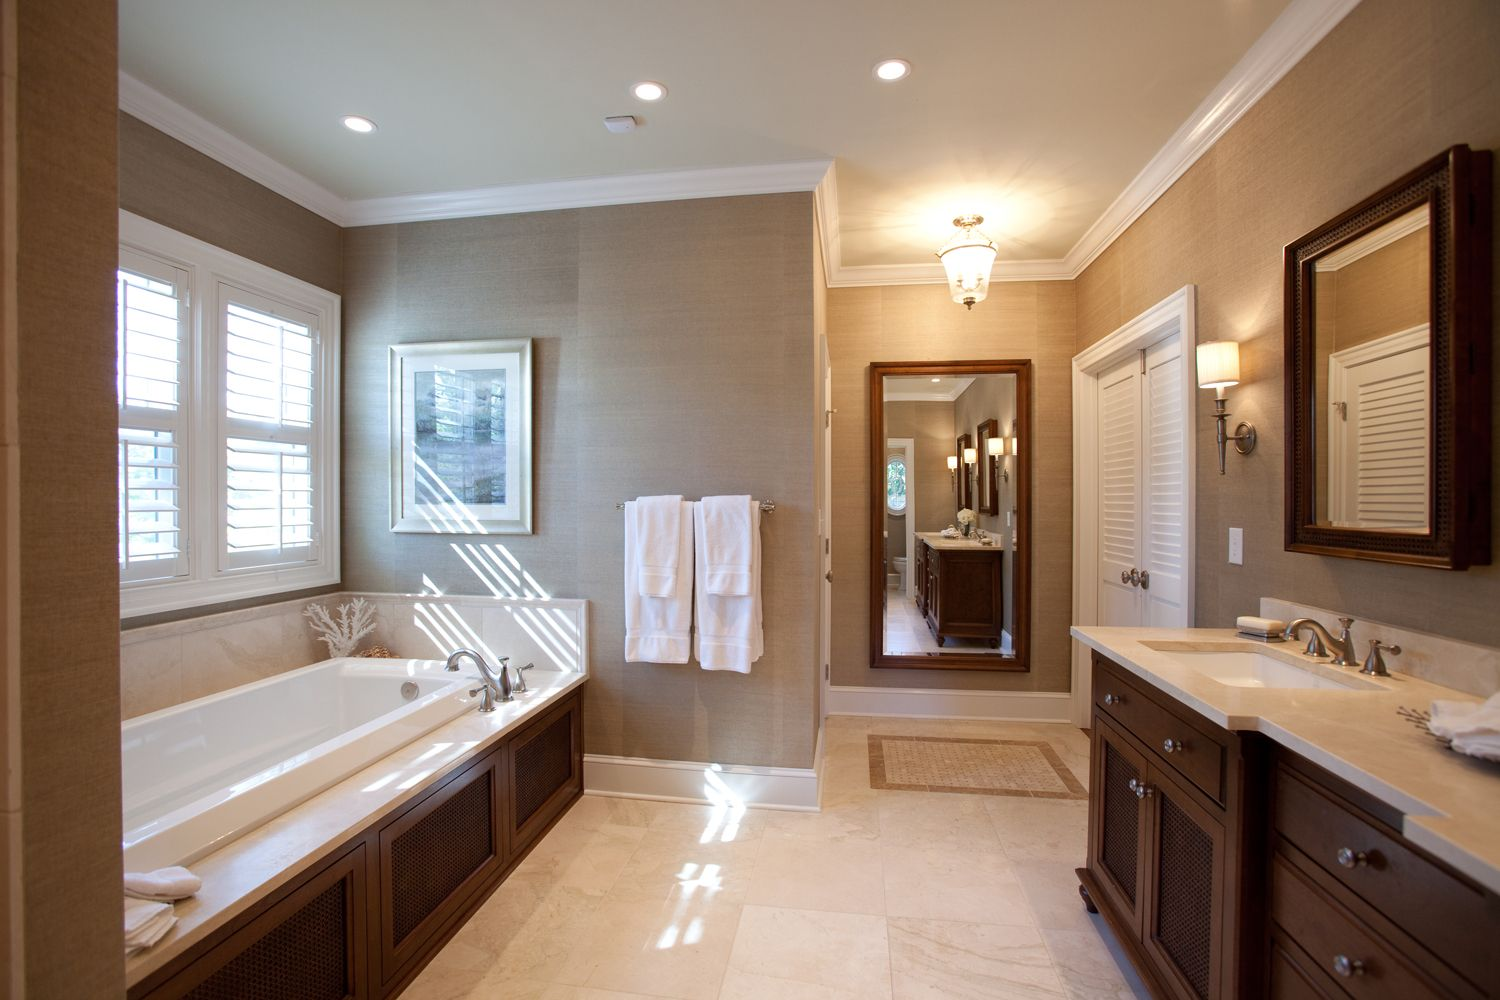 Bathroom Sets Luxury Reconditioned Bath Tub In Master Bedroom: British Colonial Style Bathroom. Master Bathroom